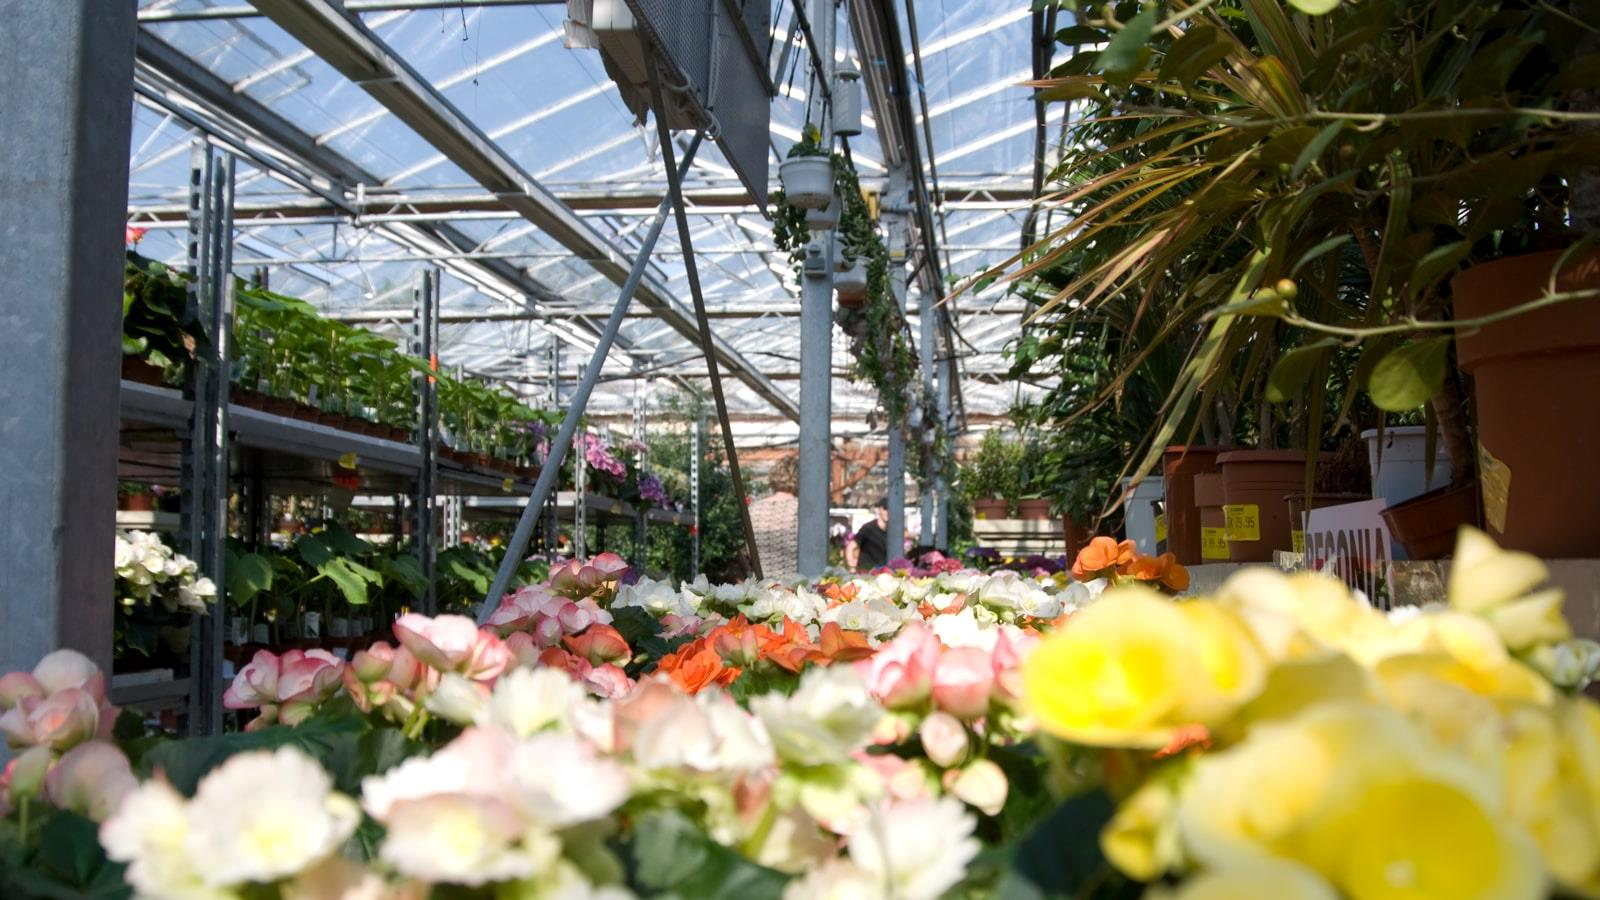 Flowers and plants in greenhouses at Gaarne Garden Center